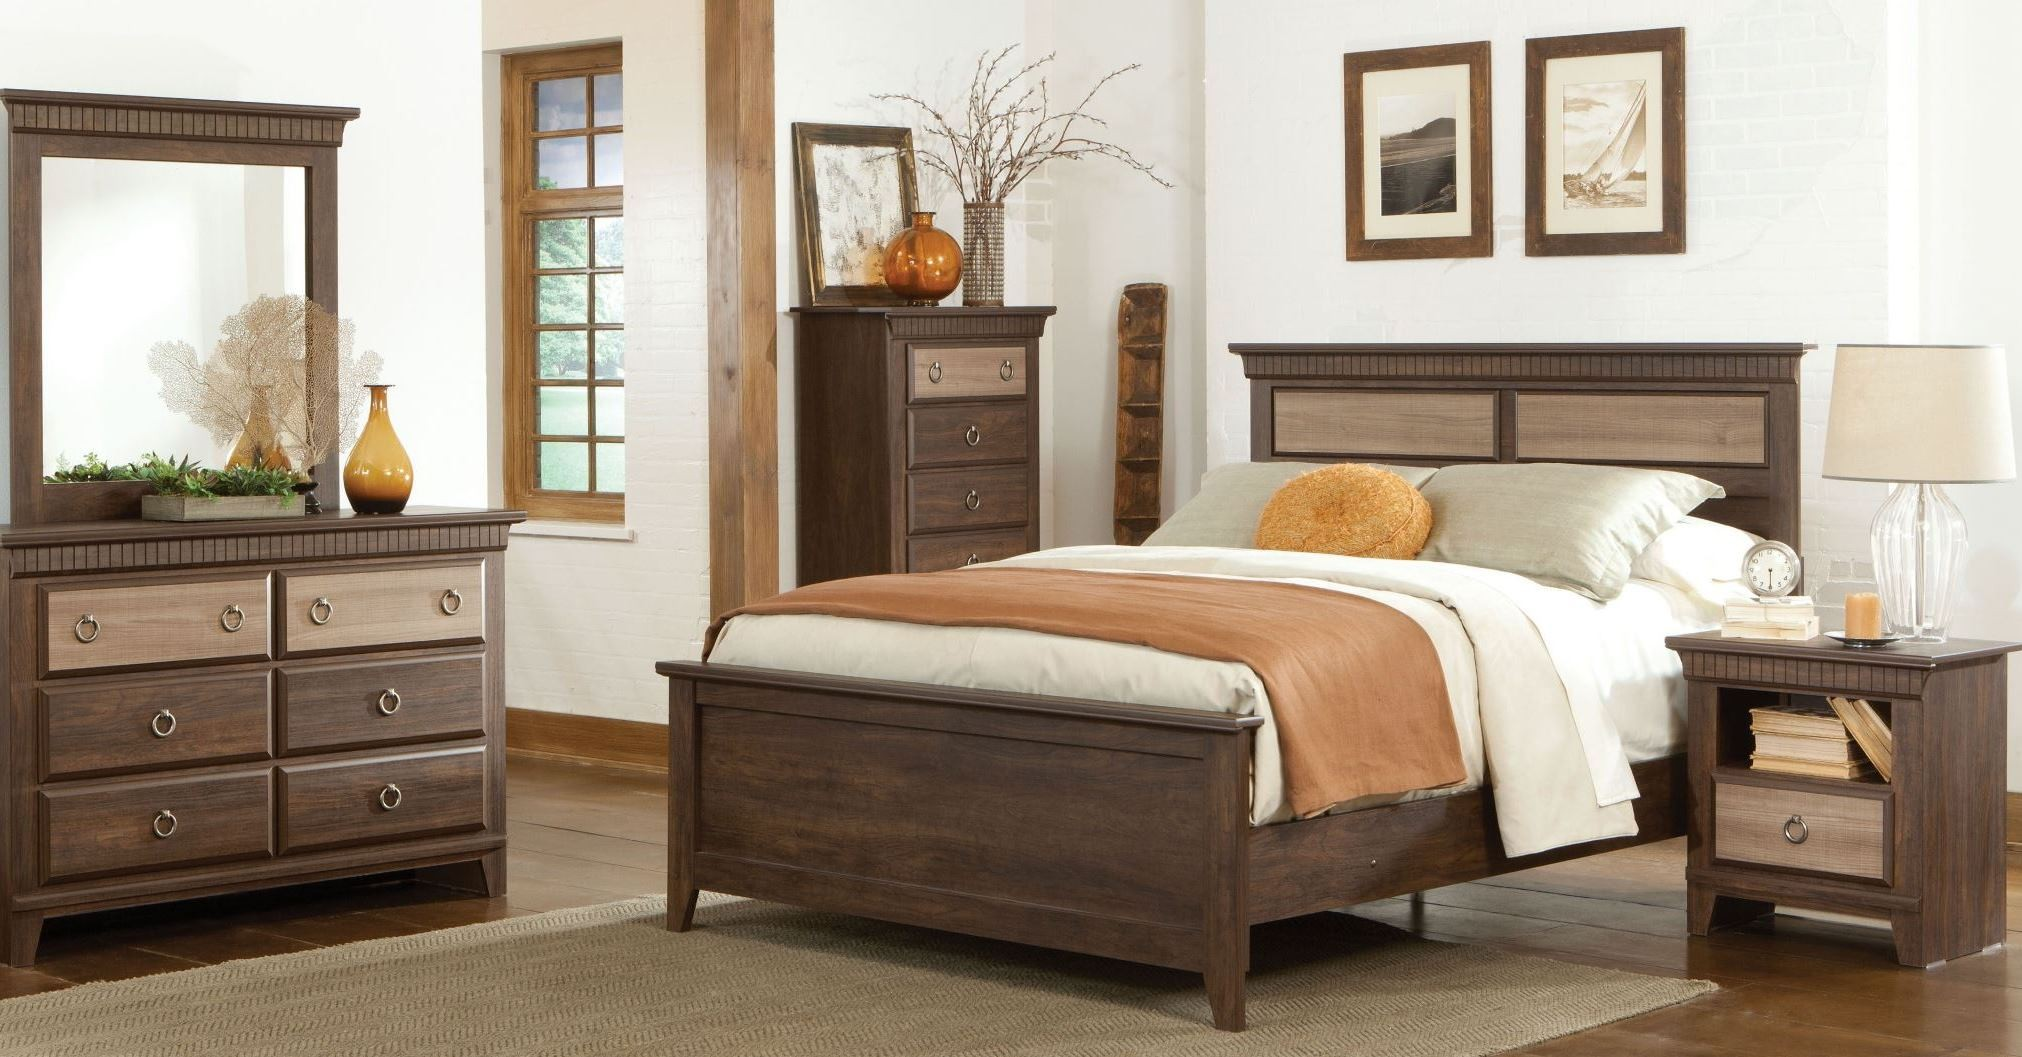 Weatherly Textured Two Tone Youth Panel Bedroom Set 681 53 70 63 Standard F